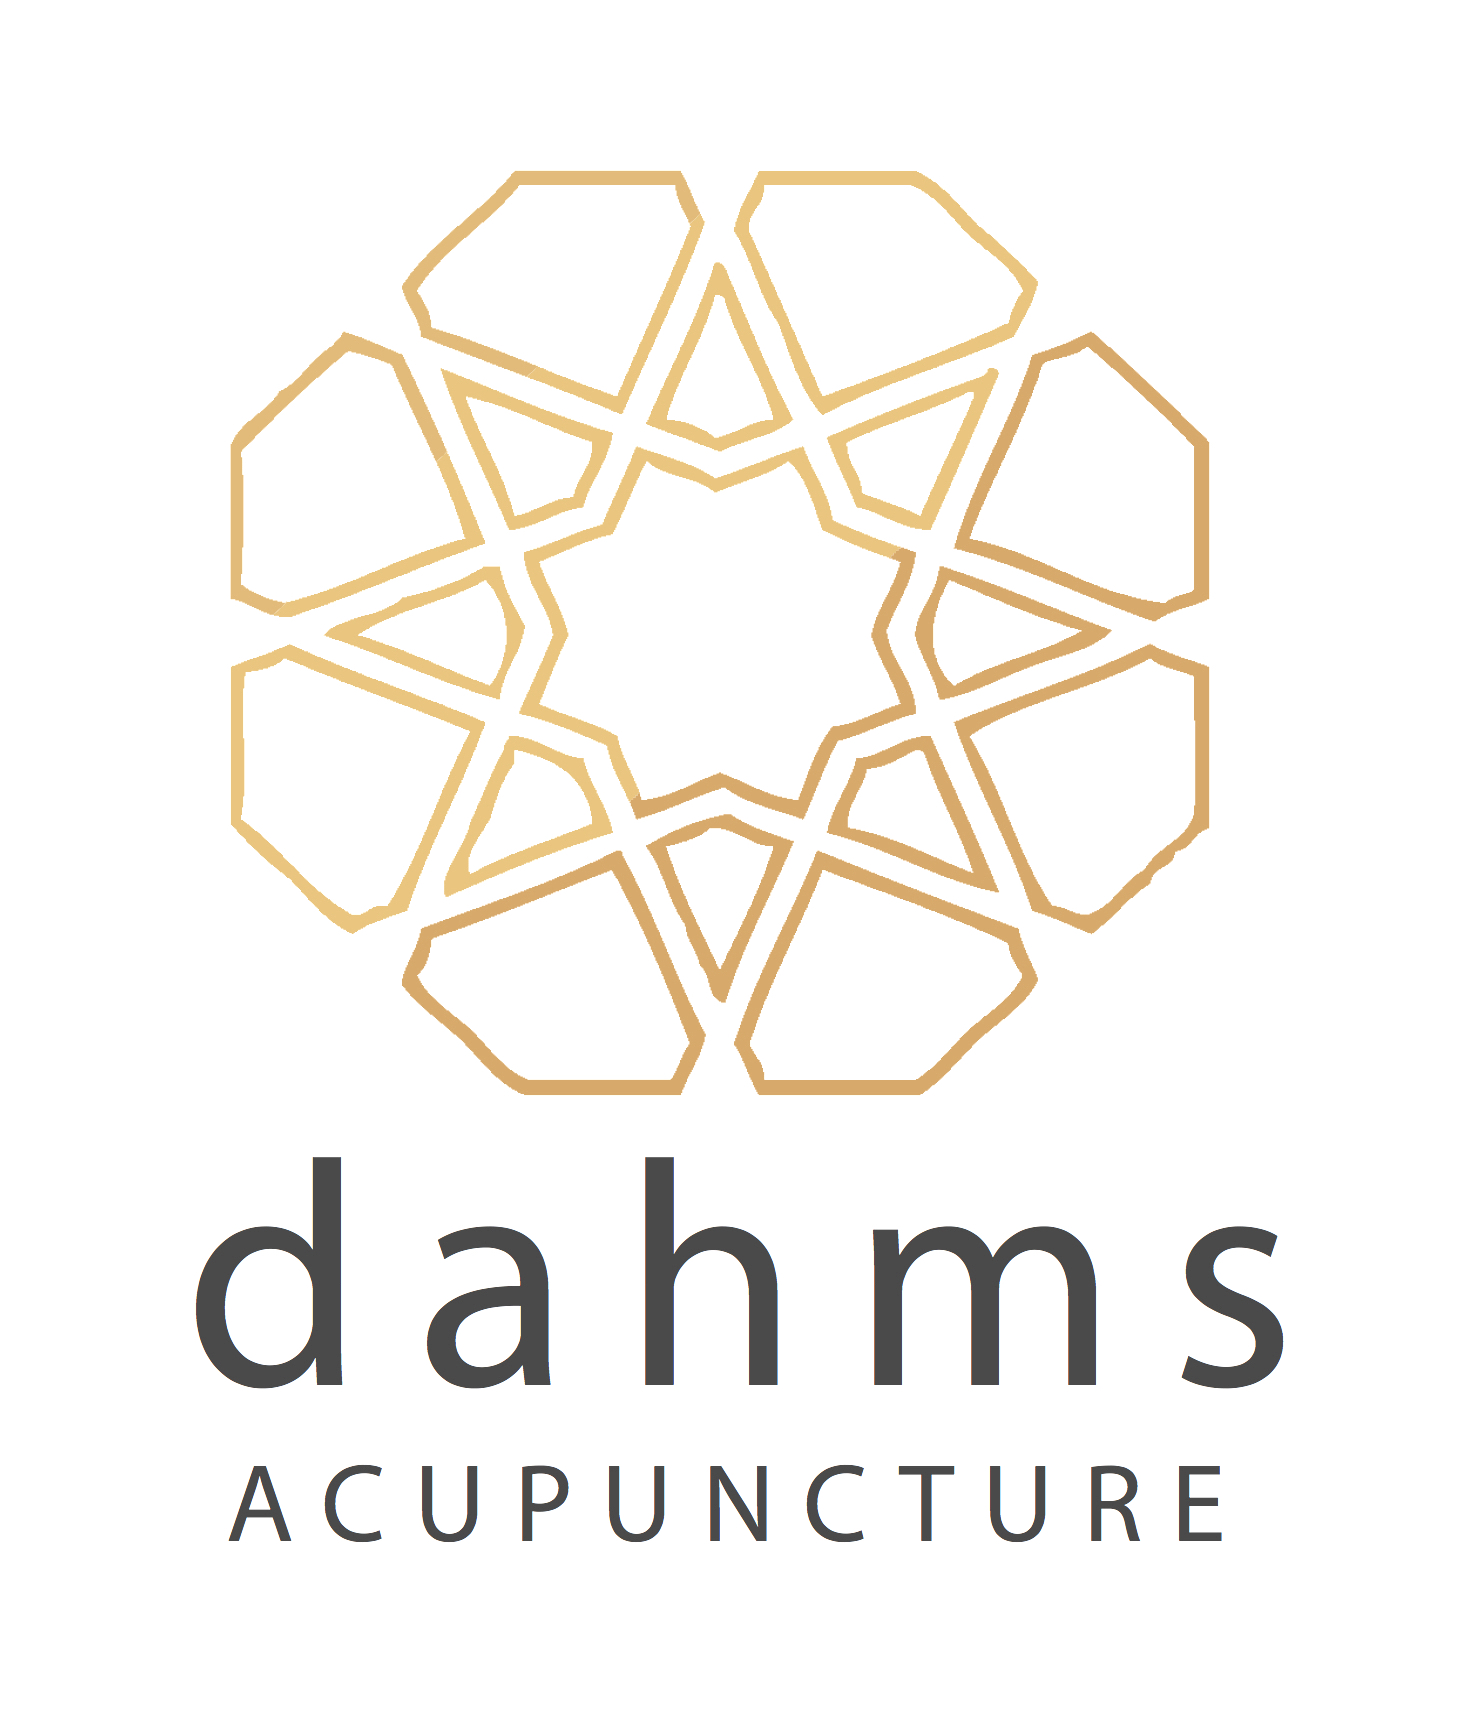 Dahms Acupuncture Sports Medicine Clinic & Apothecary